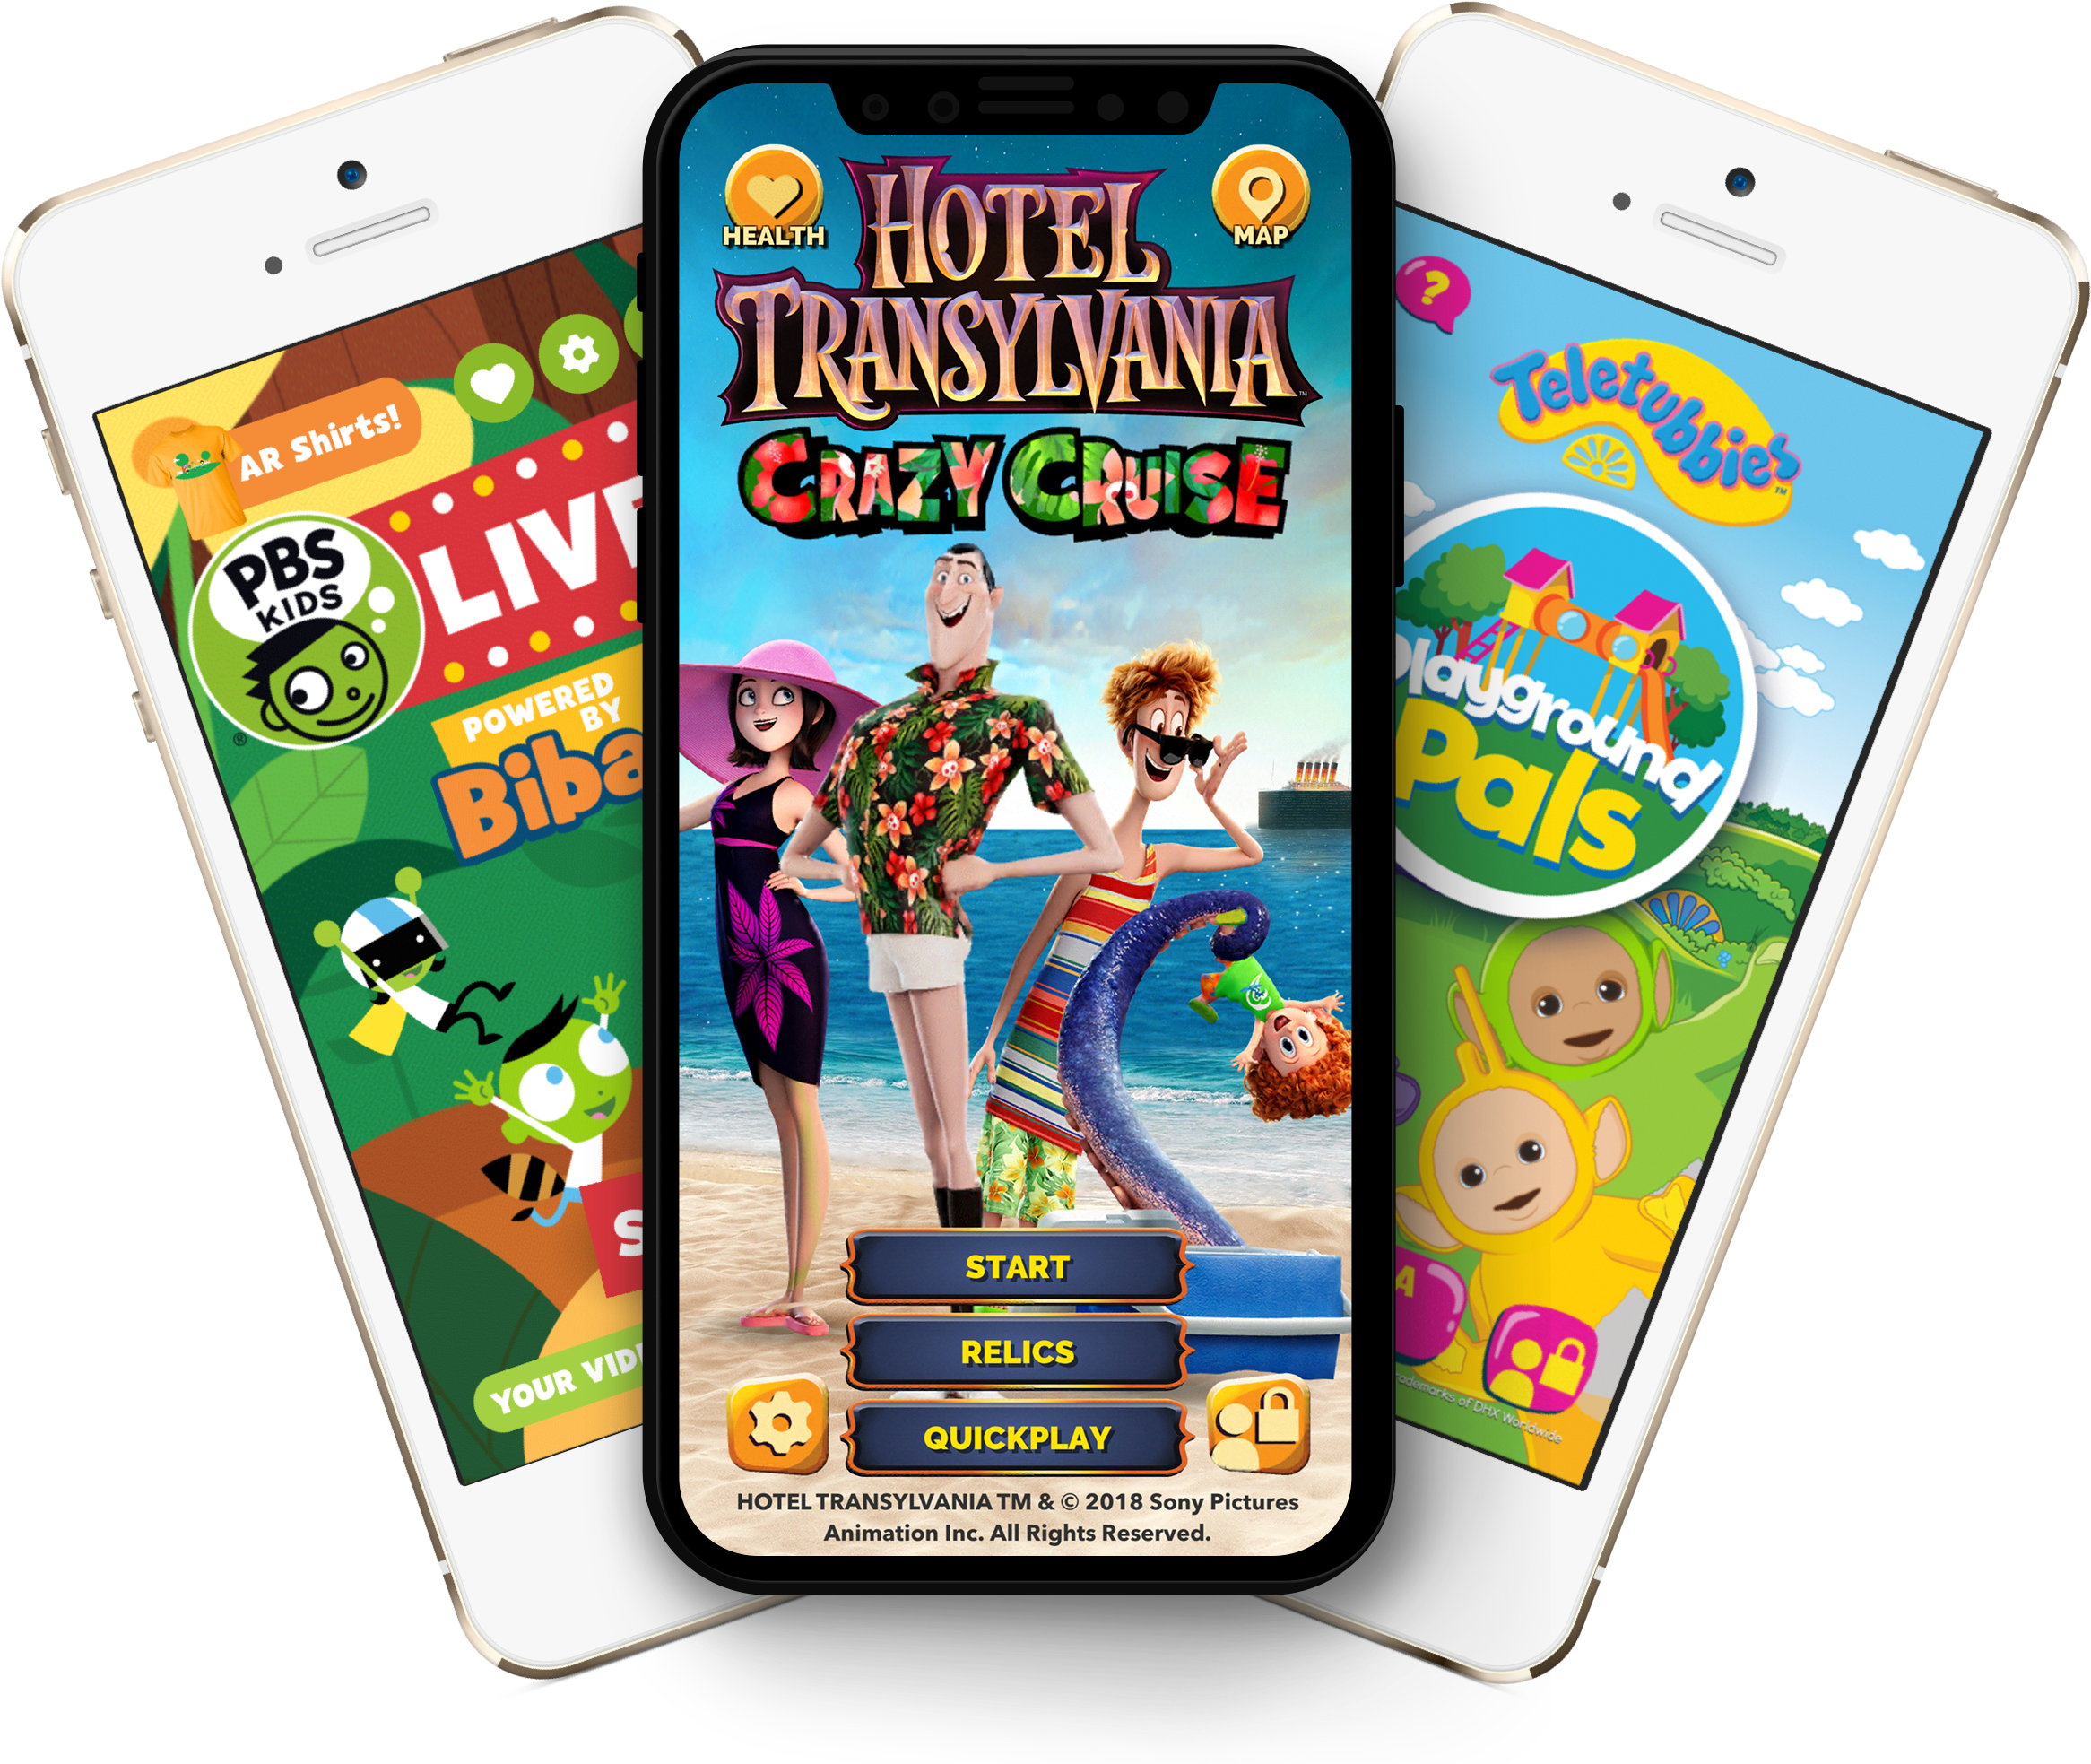 "Family-friendly, Kid-approved. - Biba games are based on the principle of ""embodied play"": kids use their imaginations to play make believe, while their bodies get a fun workout. That's why family-friendly, iconic brands like Hotel Transylvania, Teletubbies and others are happy to be part of our offering!"